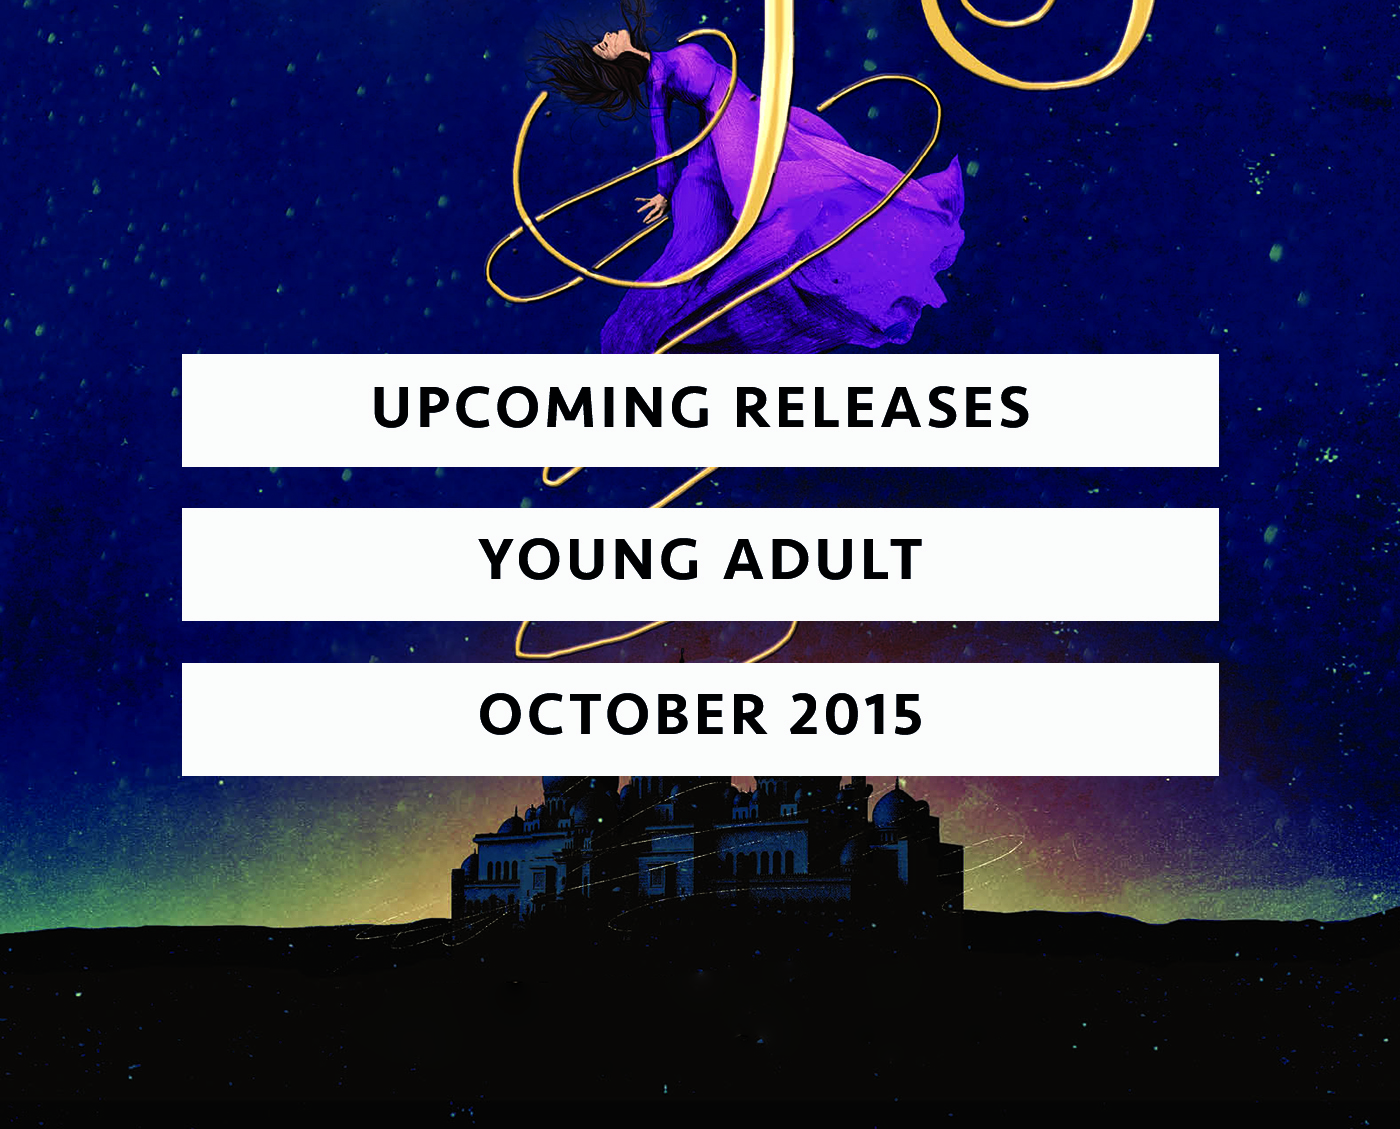 Upcoming Releases October 2015